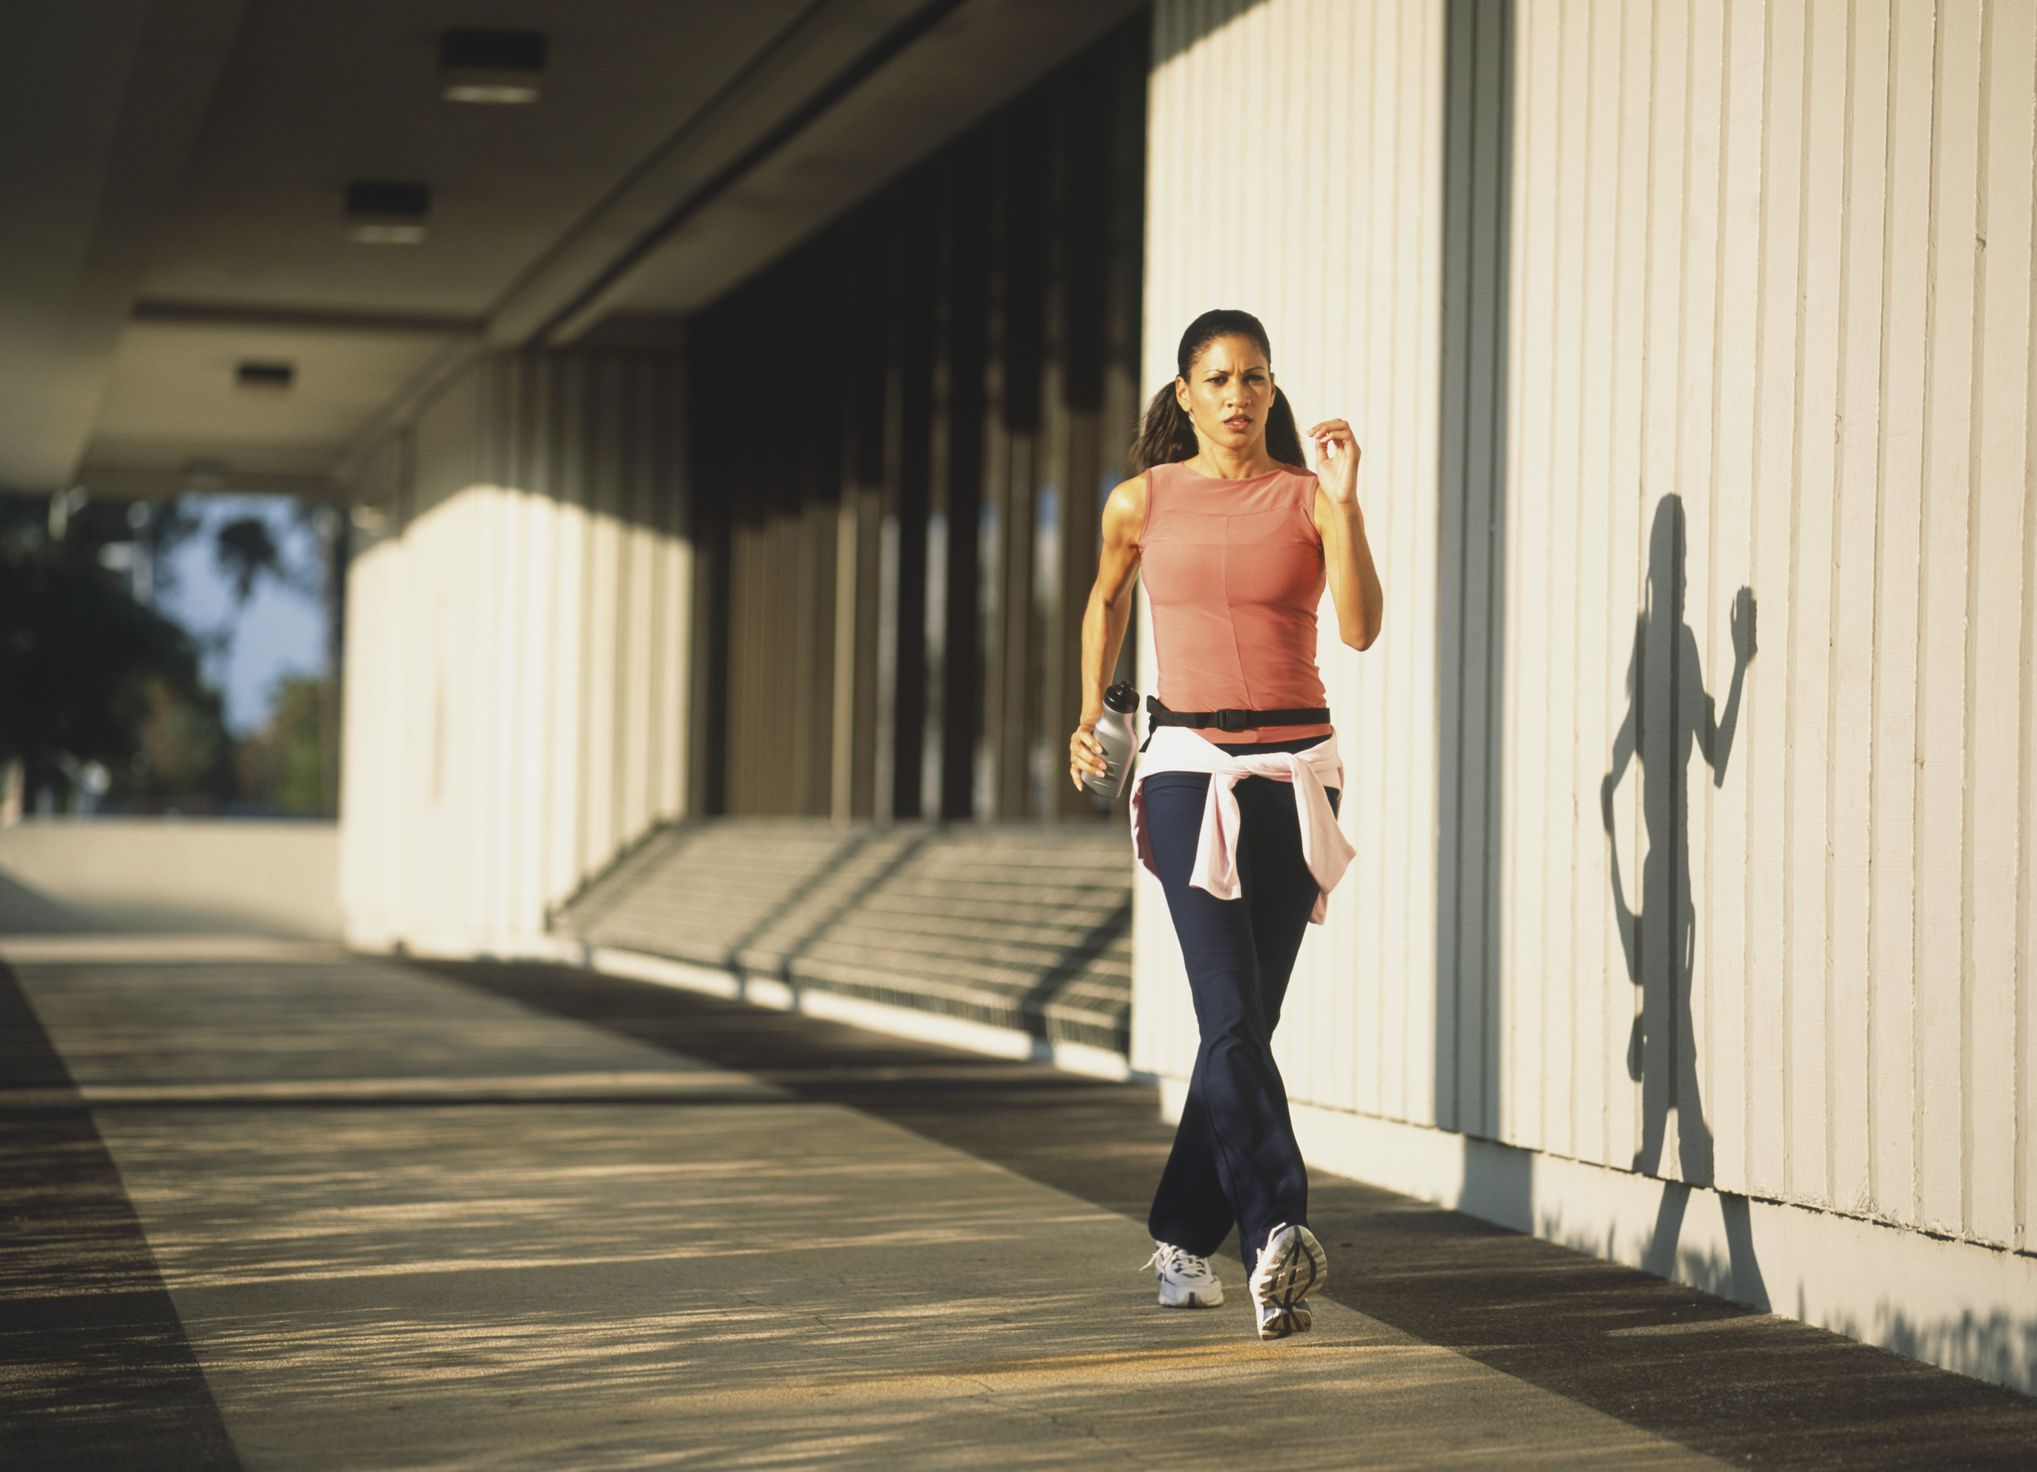 How to Burn Fat With a Walking Workout